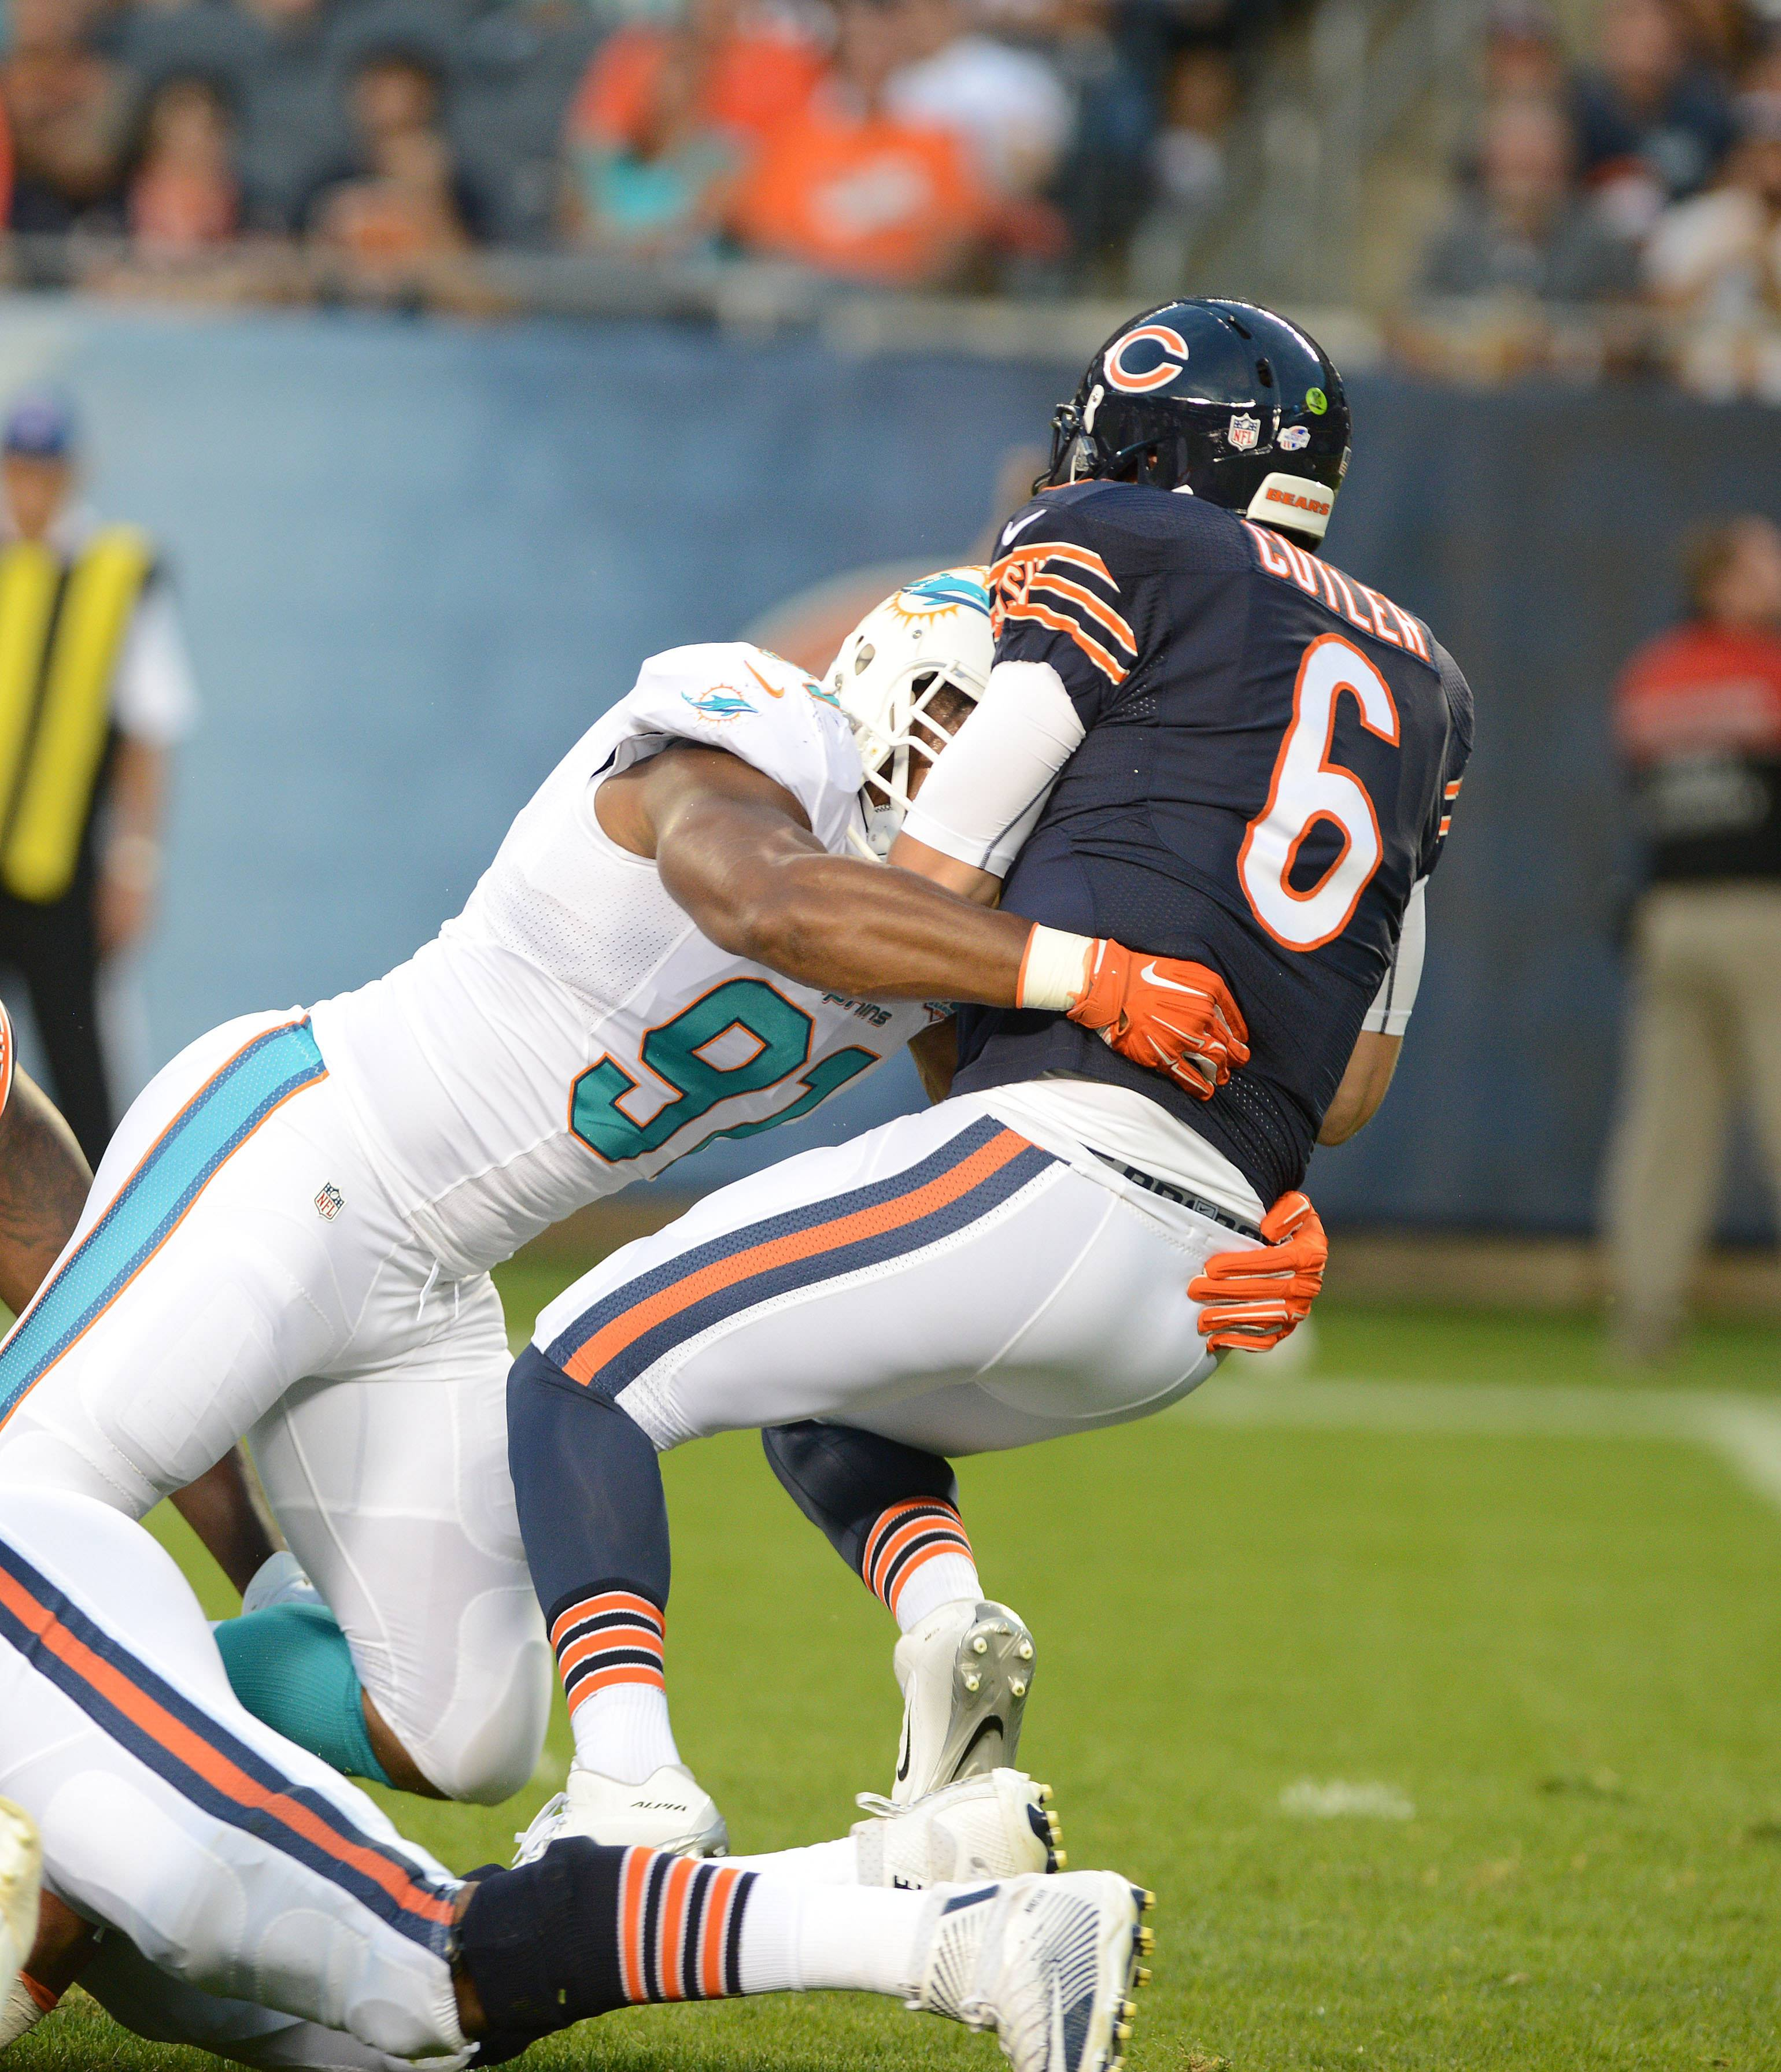 Rozner: New Bears just as inspiring as old Bears